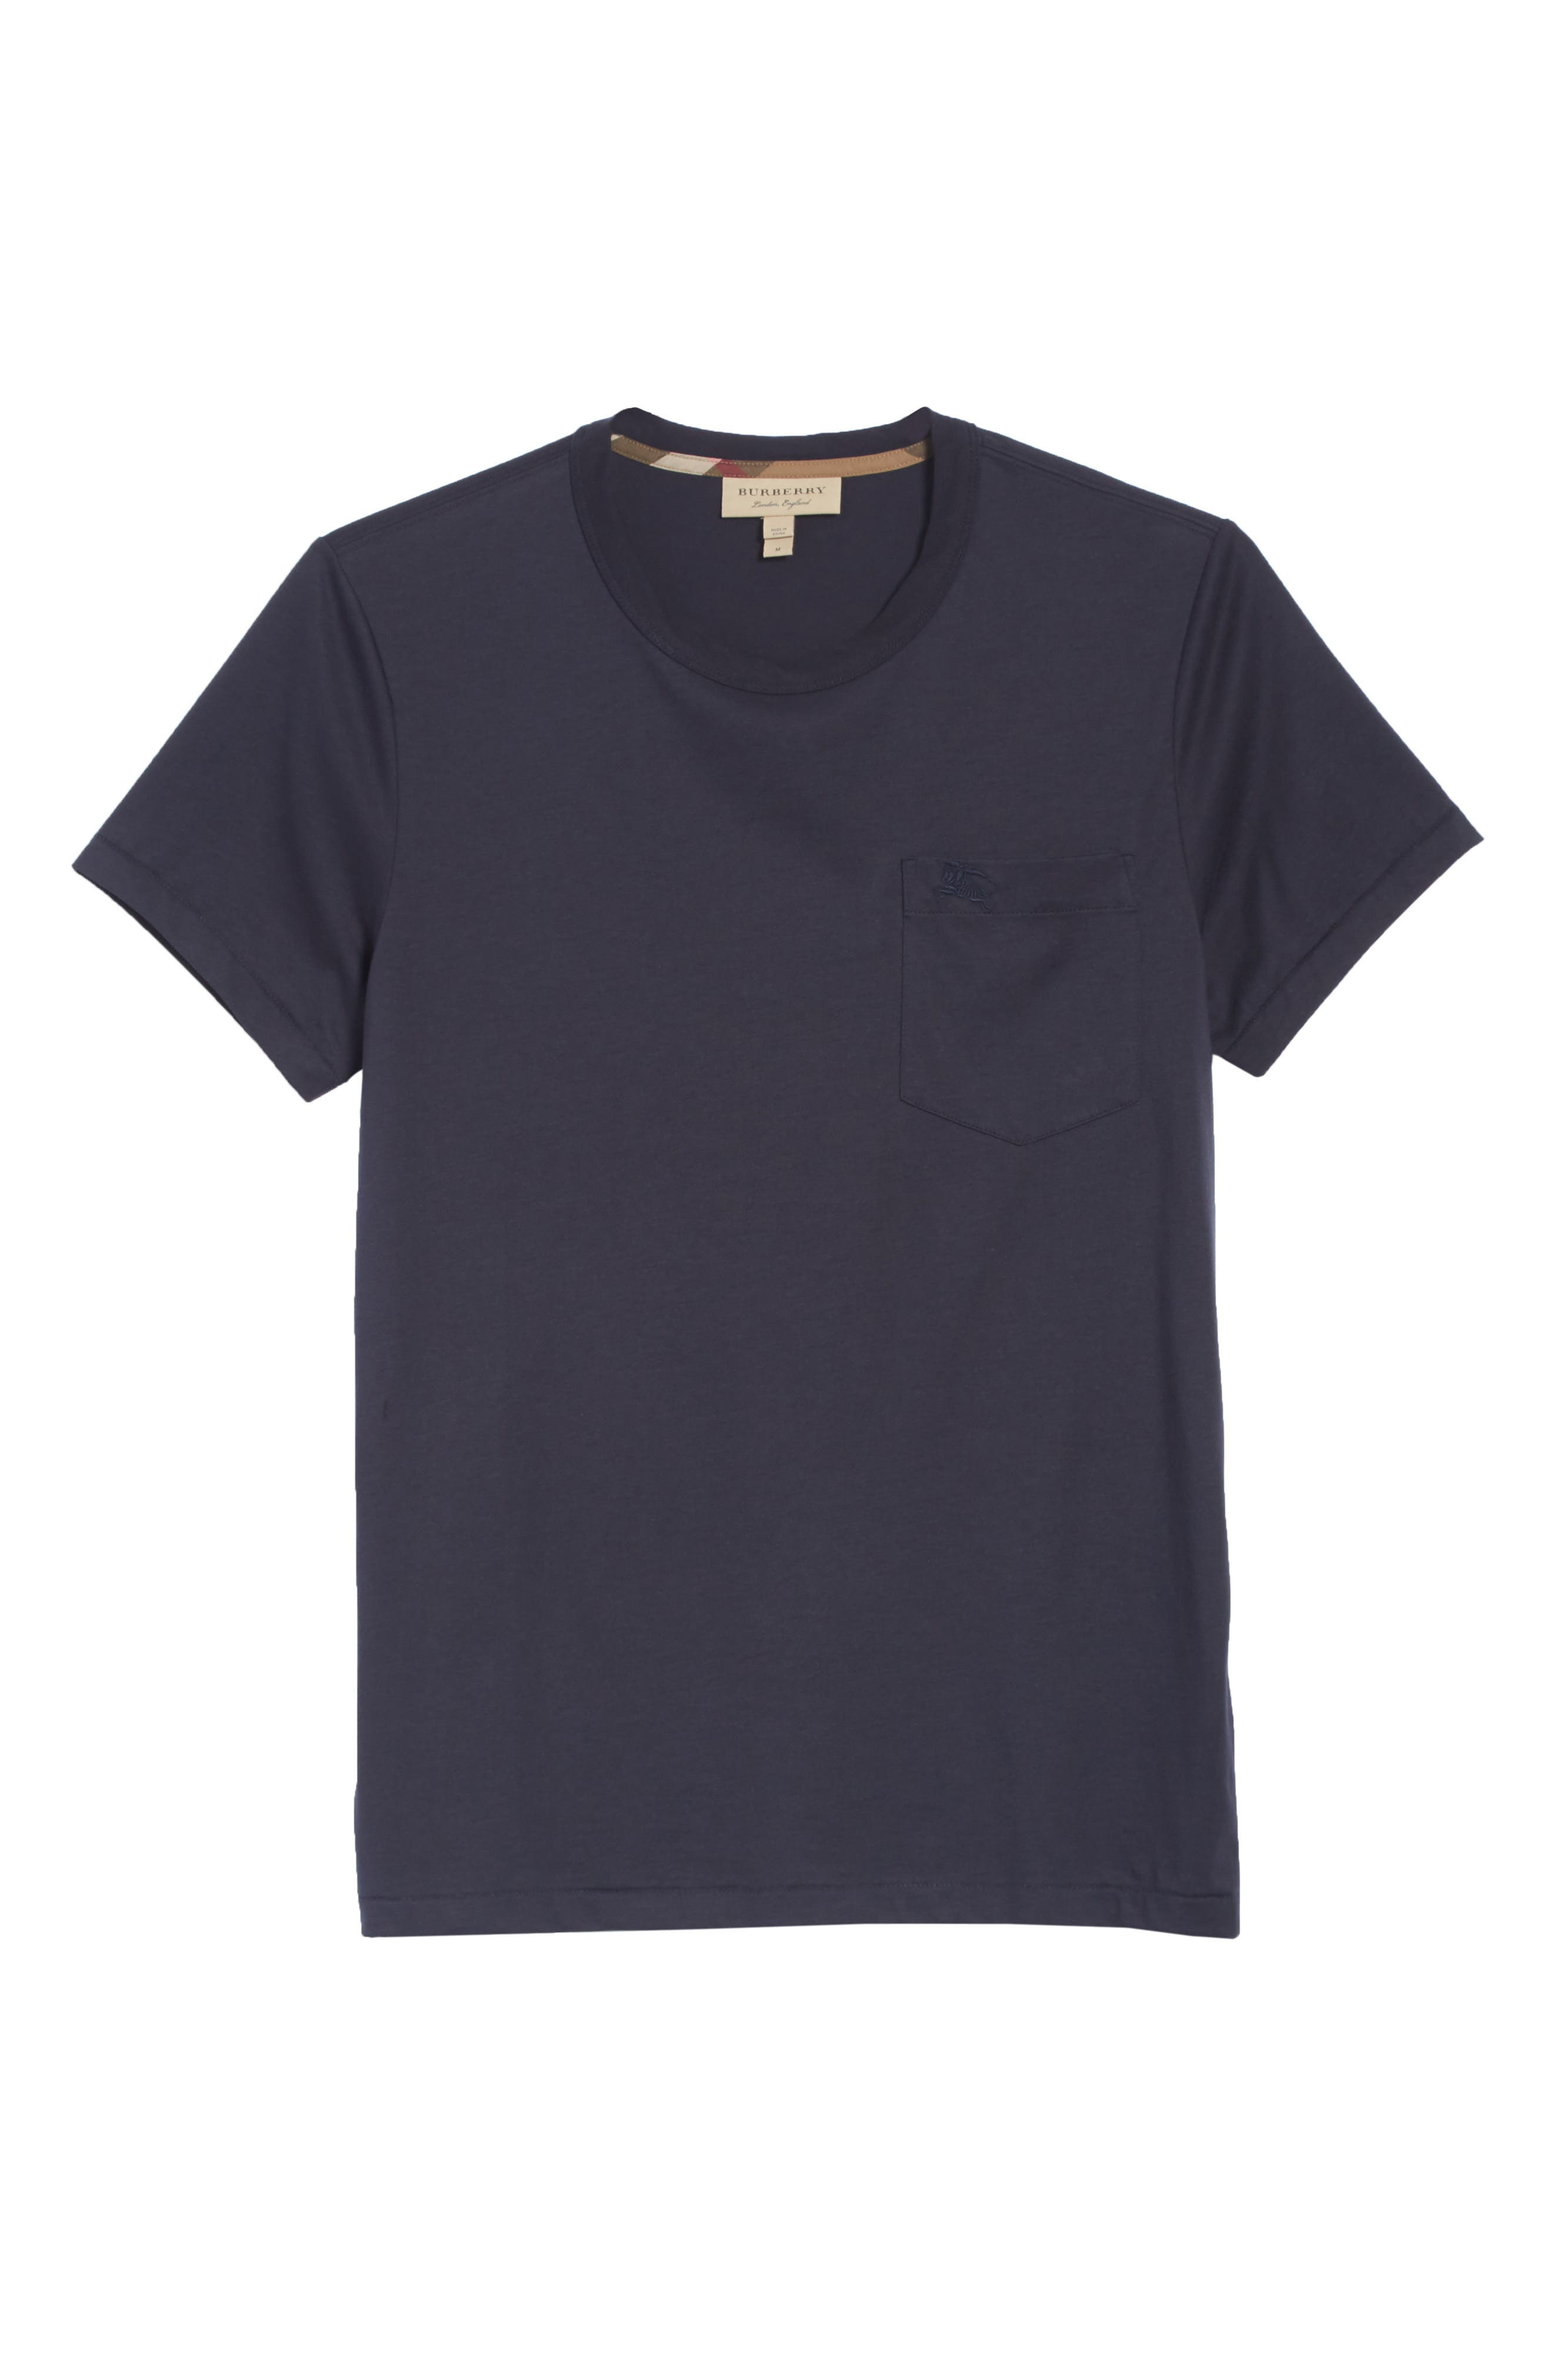 Henton T-Shirt,                             Alternate thumbnail 6, color,                             Navy